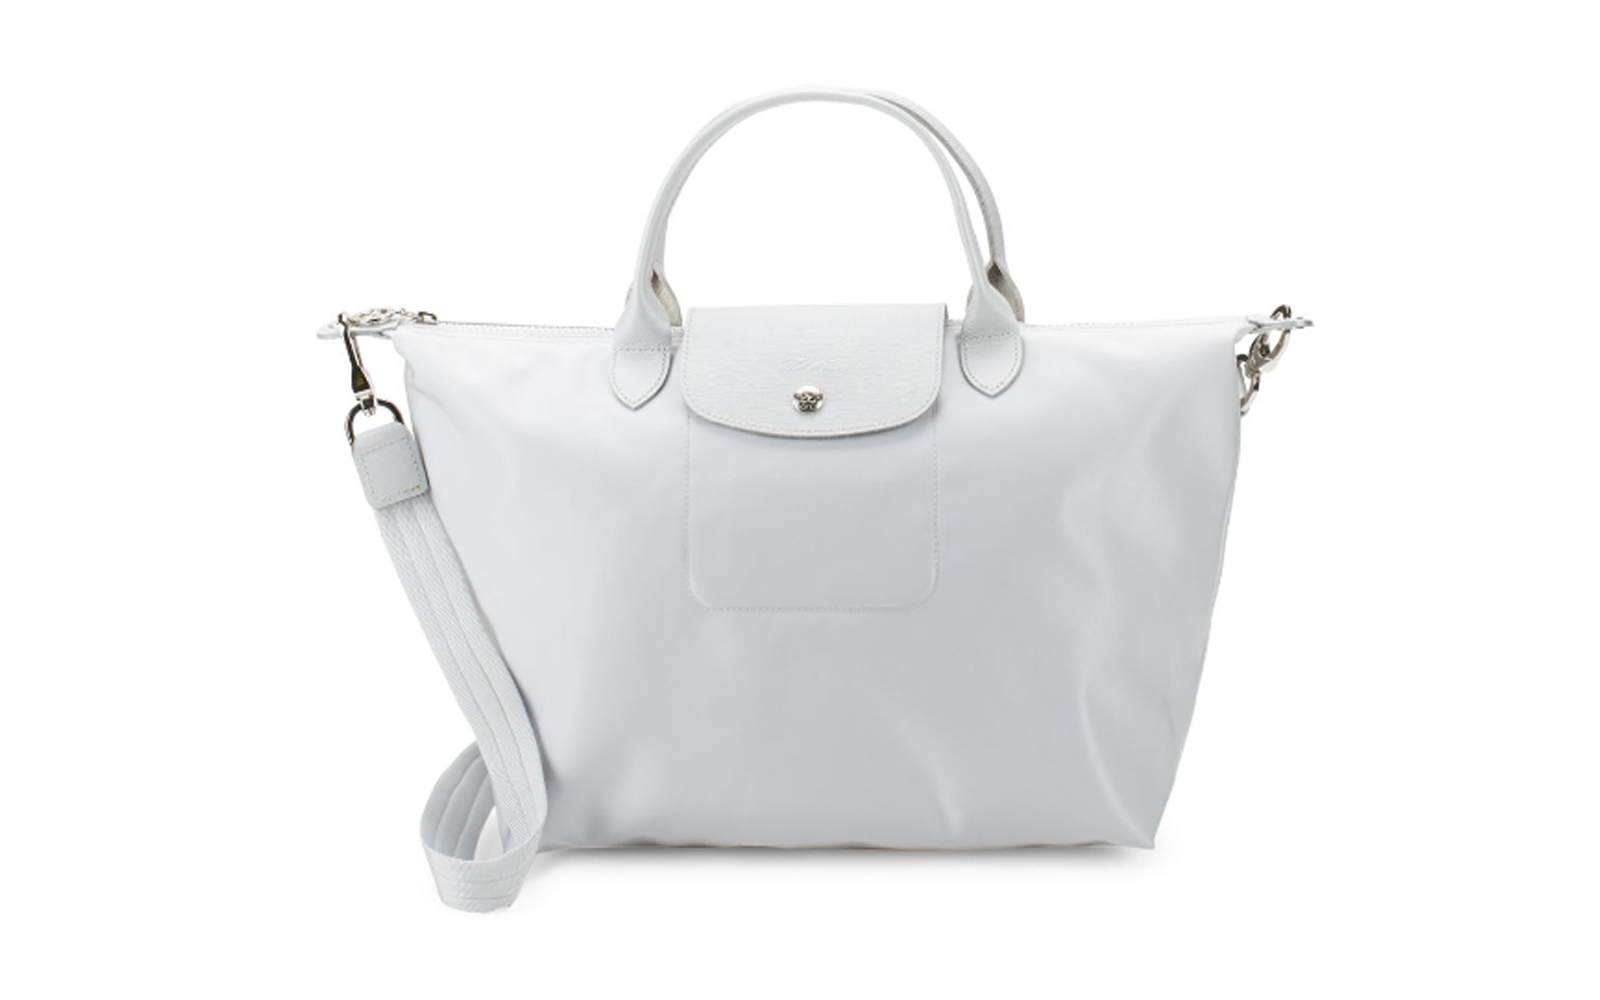 Longchamp Bags on Sale